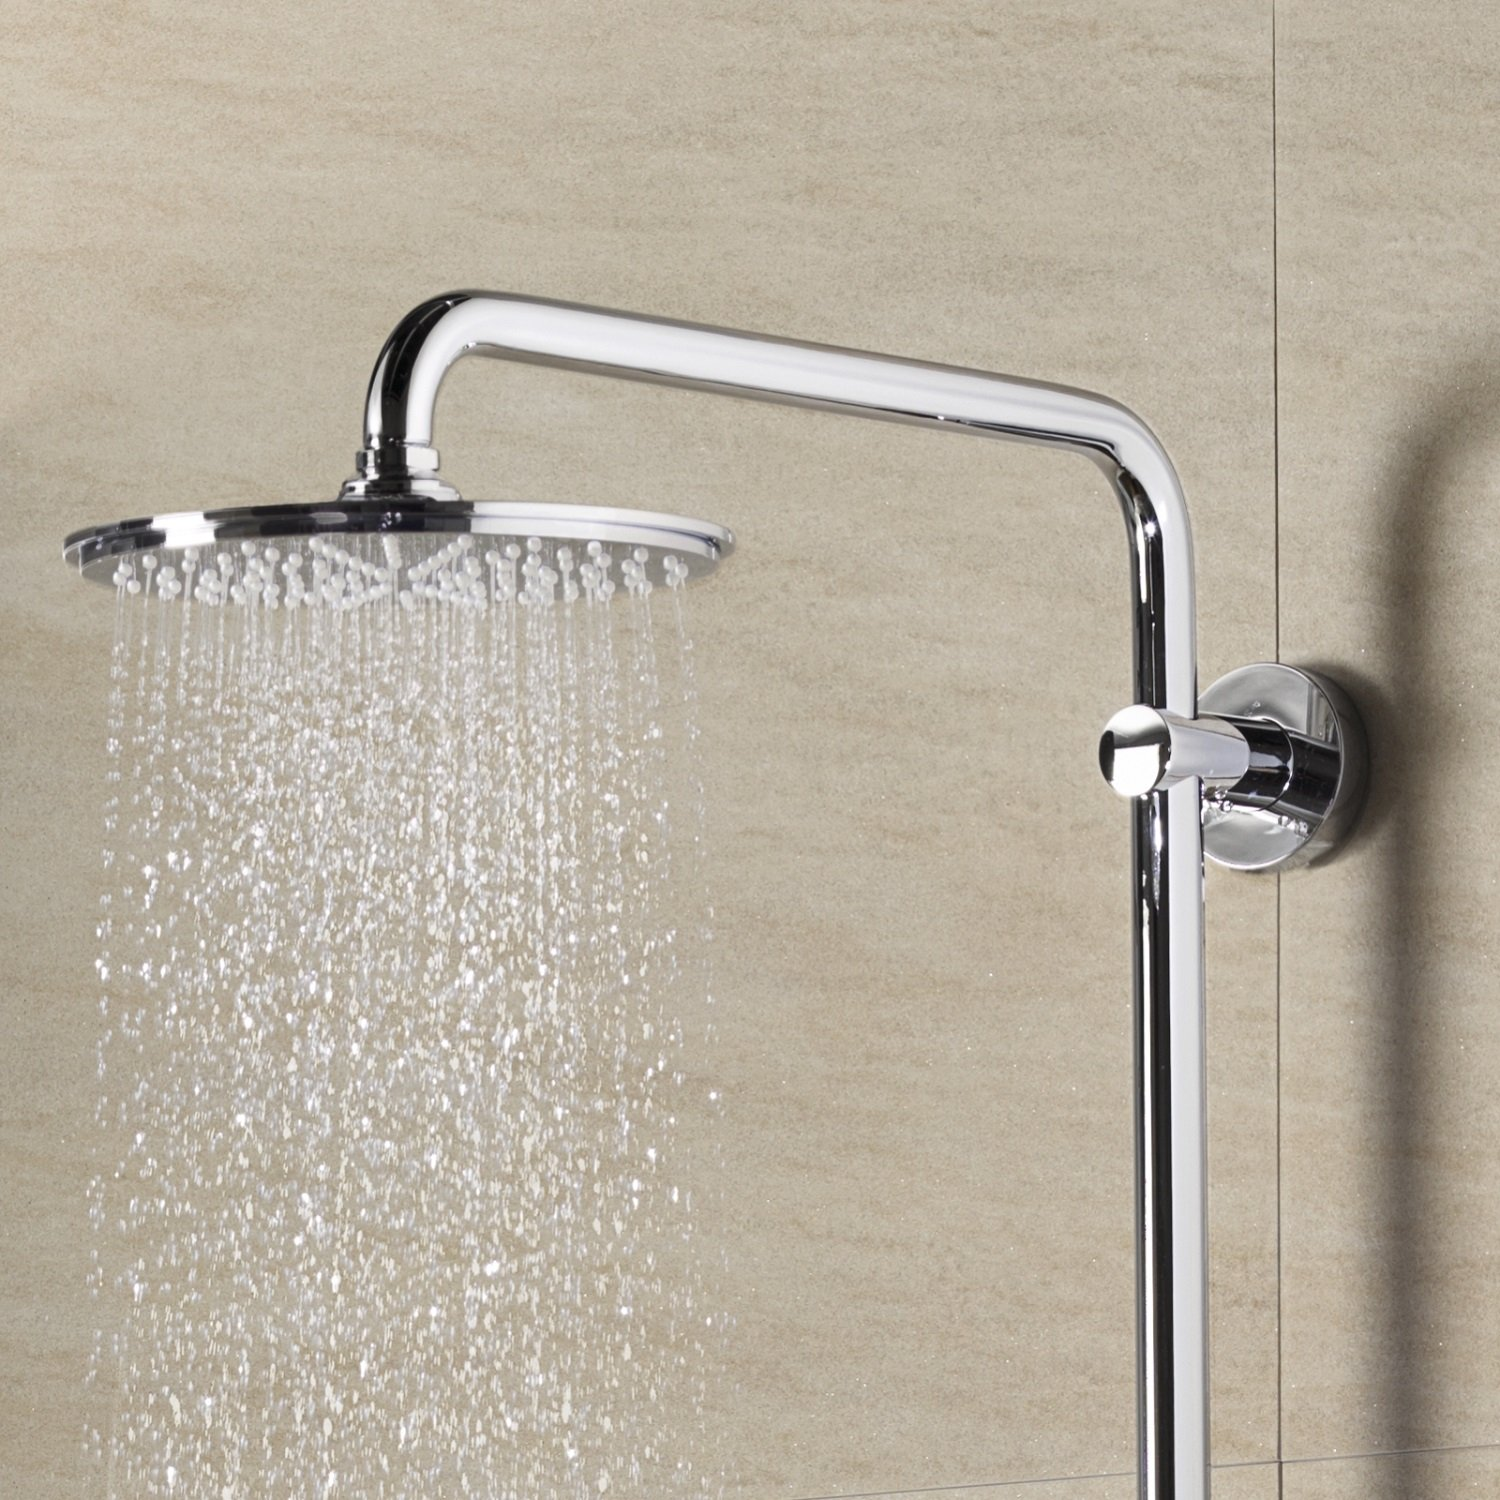 chrome with shower head hand shower wall rail; water-saving 27968000 wall mounted GROHE Rainshower 310 shower system with thermostat thermostatic rainshower set scalding protection